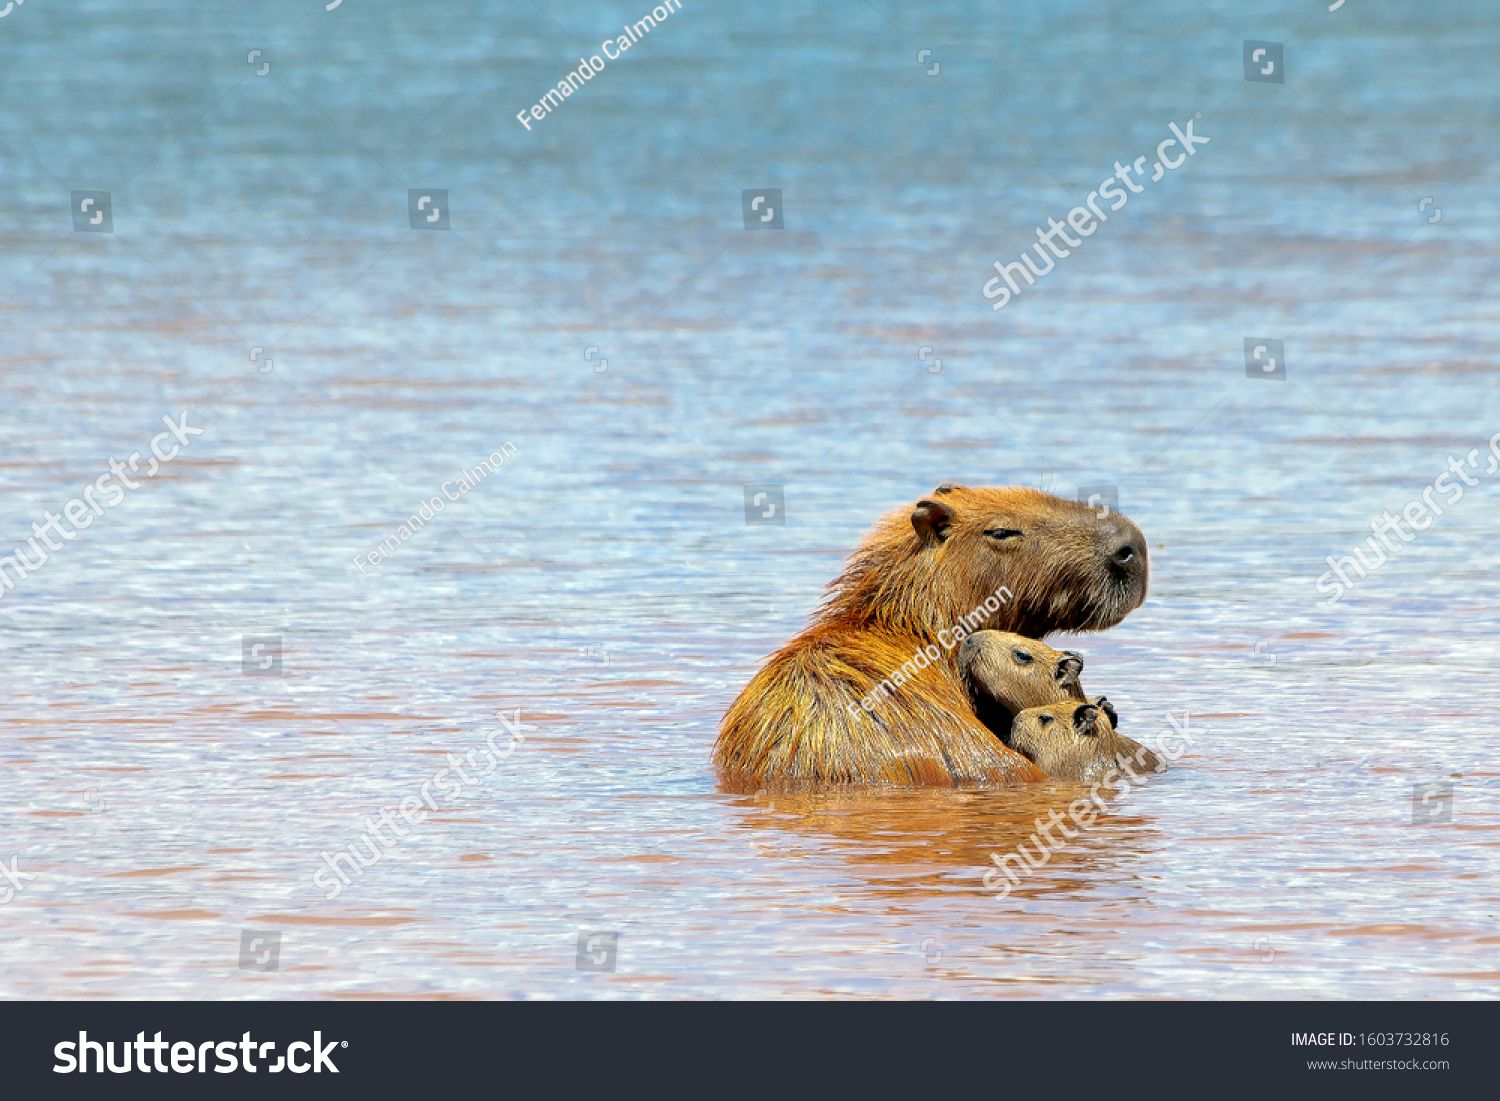 The mother capybara enjoying her children inside Parano¨¢ Lake in Brasilia, Brazil. The capybara is the largest rodent in the world. Species Hydrochoerus hydrochaeris. Wildlife. Cerrado. #Ad , #sponsored, #Lake#Parano#Brazil#Brasilia